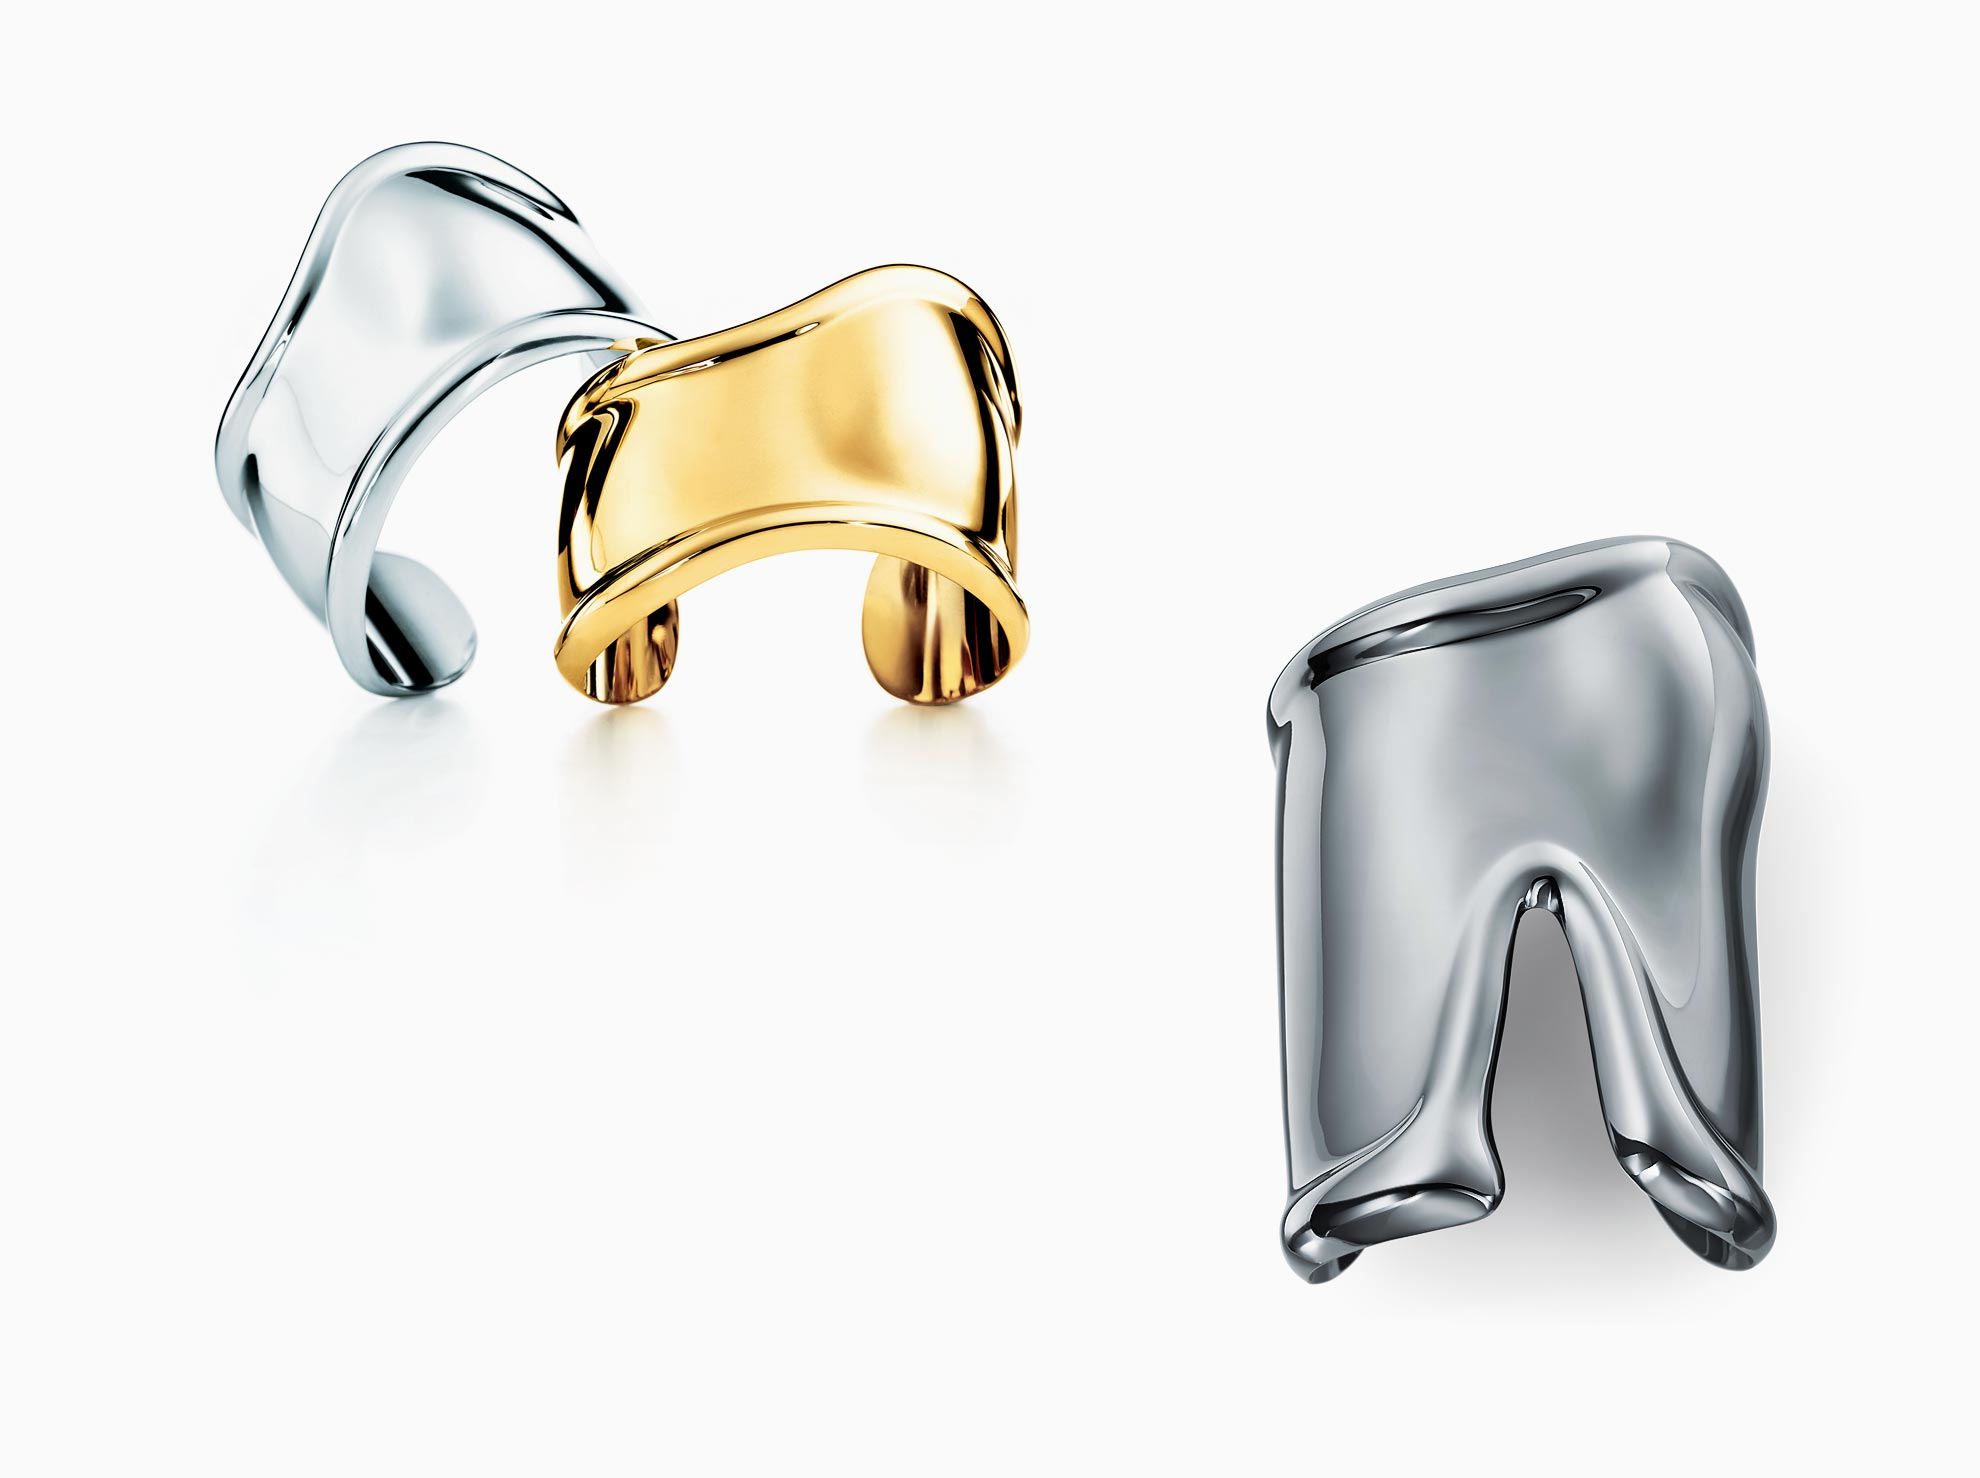 Designed in the 1970s, Elsa Peretti's Bone cuffs are still sold through Tiffany in a variety of metals, ranging from $495 for a small one in black-carbon over copper to $23,000 for a large 18k gold cuff. The British Museum added the Bone cuff to its permanent 20th century collection in 2009.